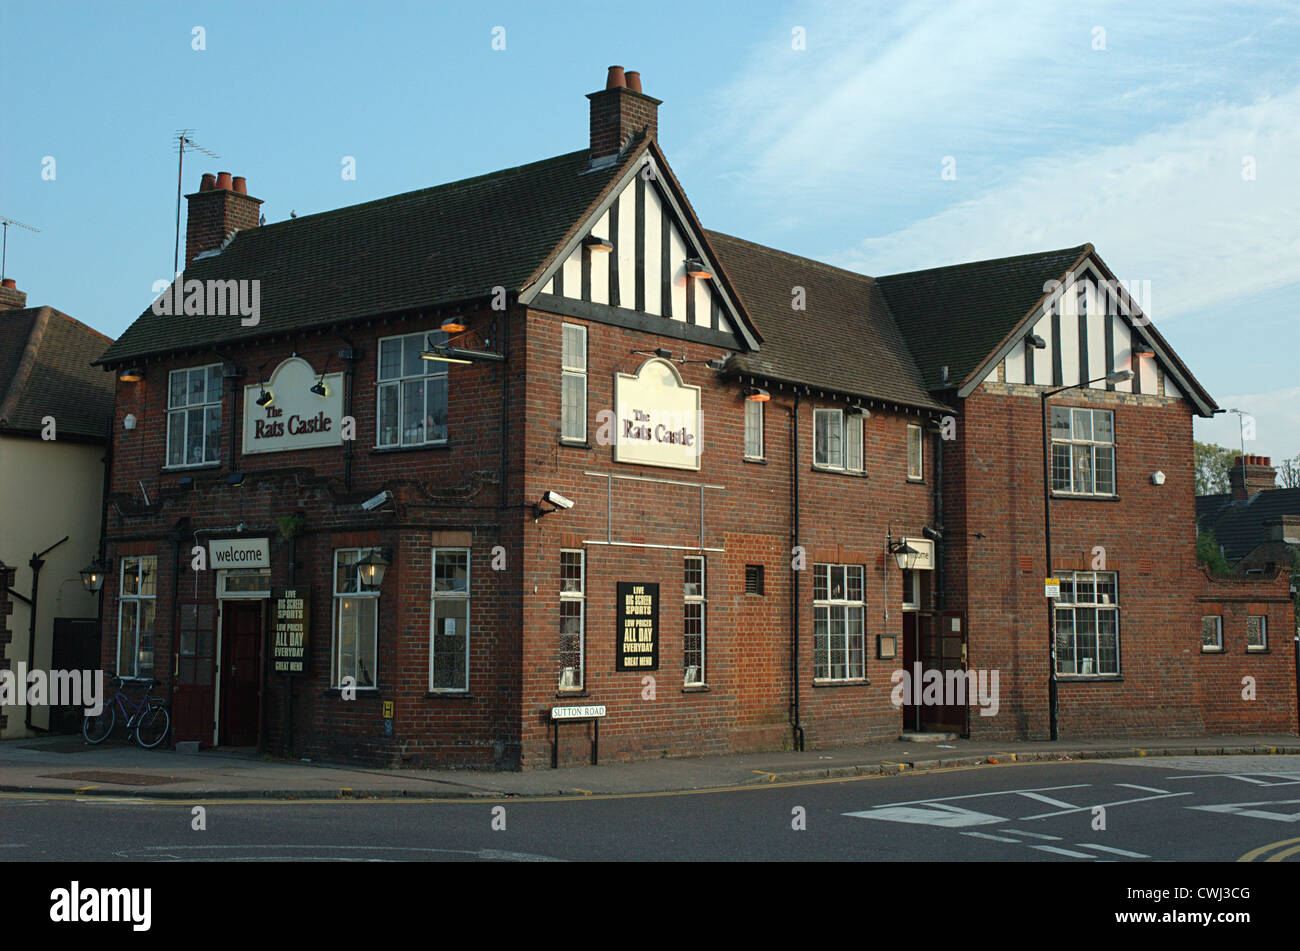 The Rats Castle, corner of Hatfield Road and Sutton Road, St Albans, Hertfordshire, England, UK - Stock Image